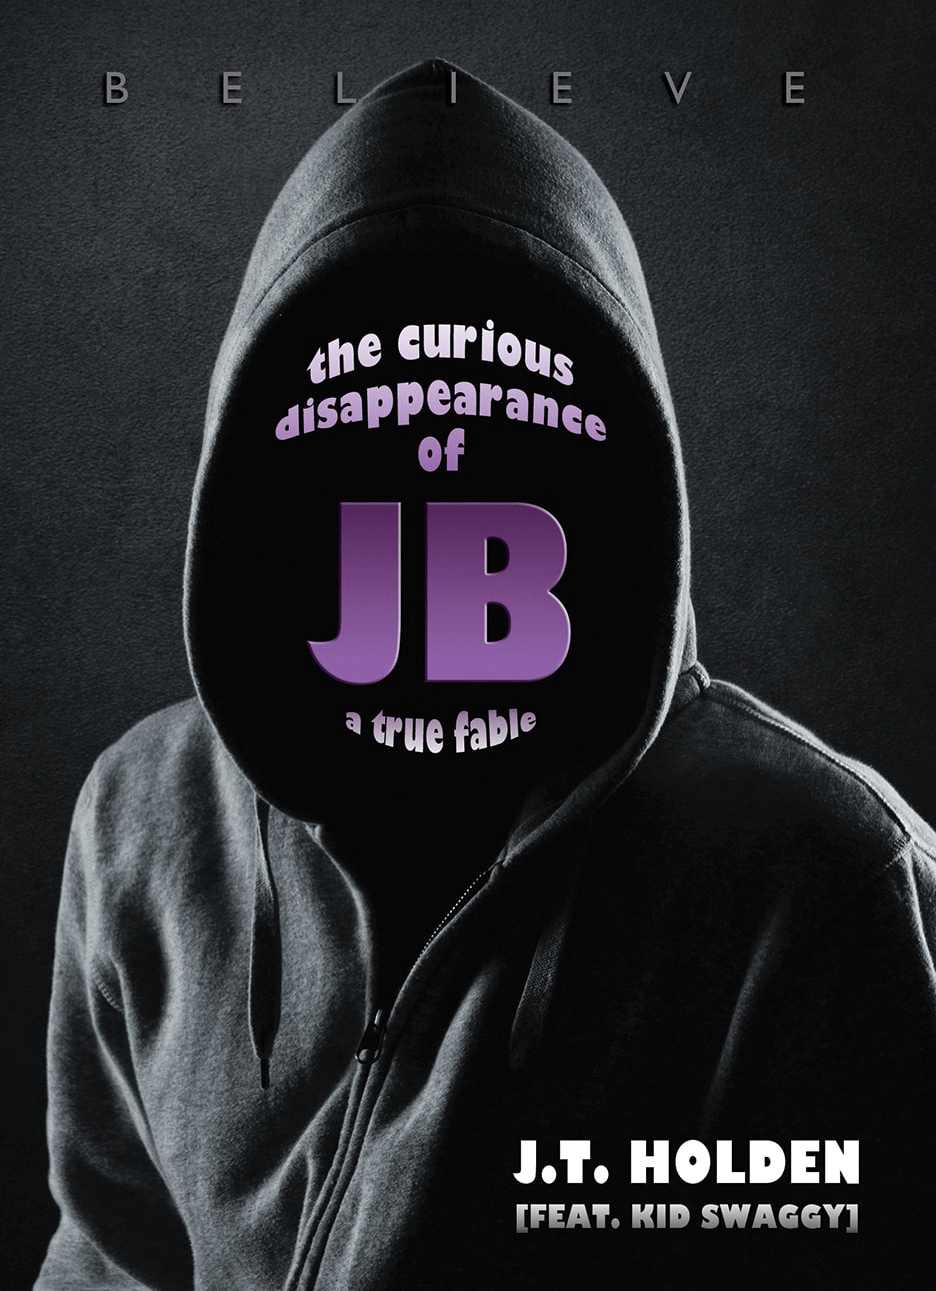 The Curious Disappearance of JB